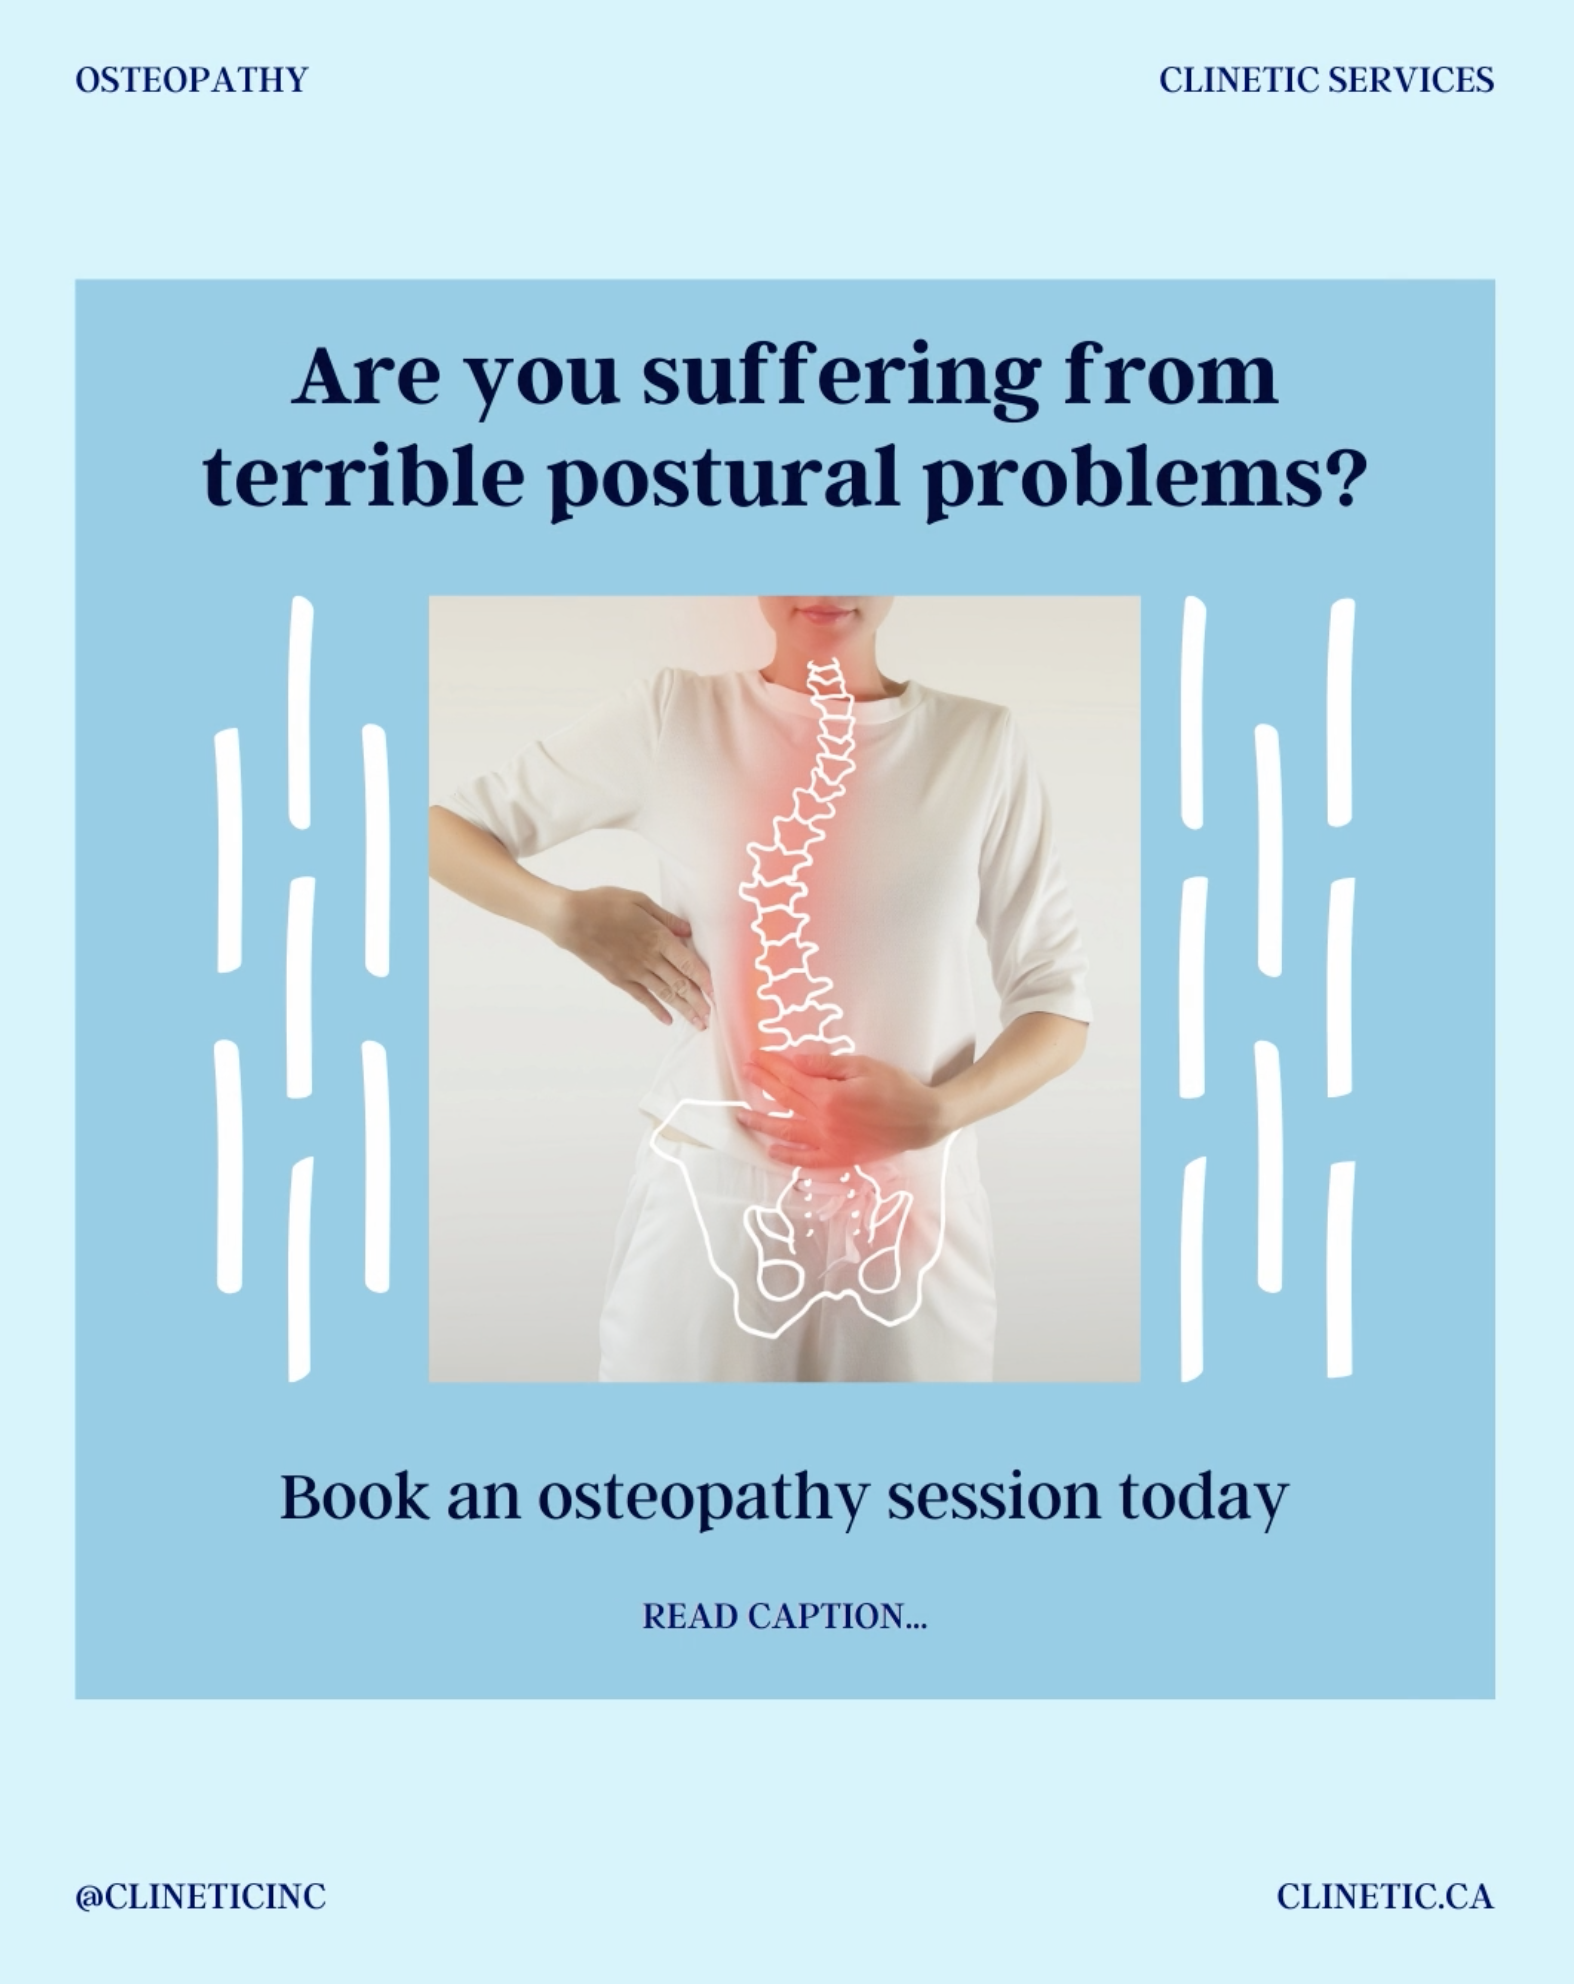 Are you suffering from terrible postural problems?